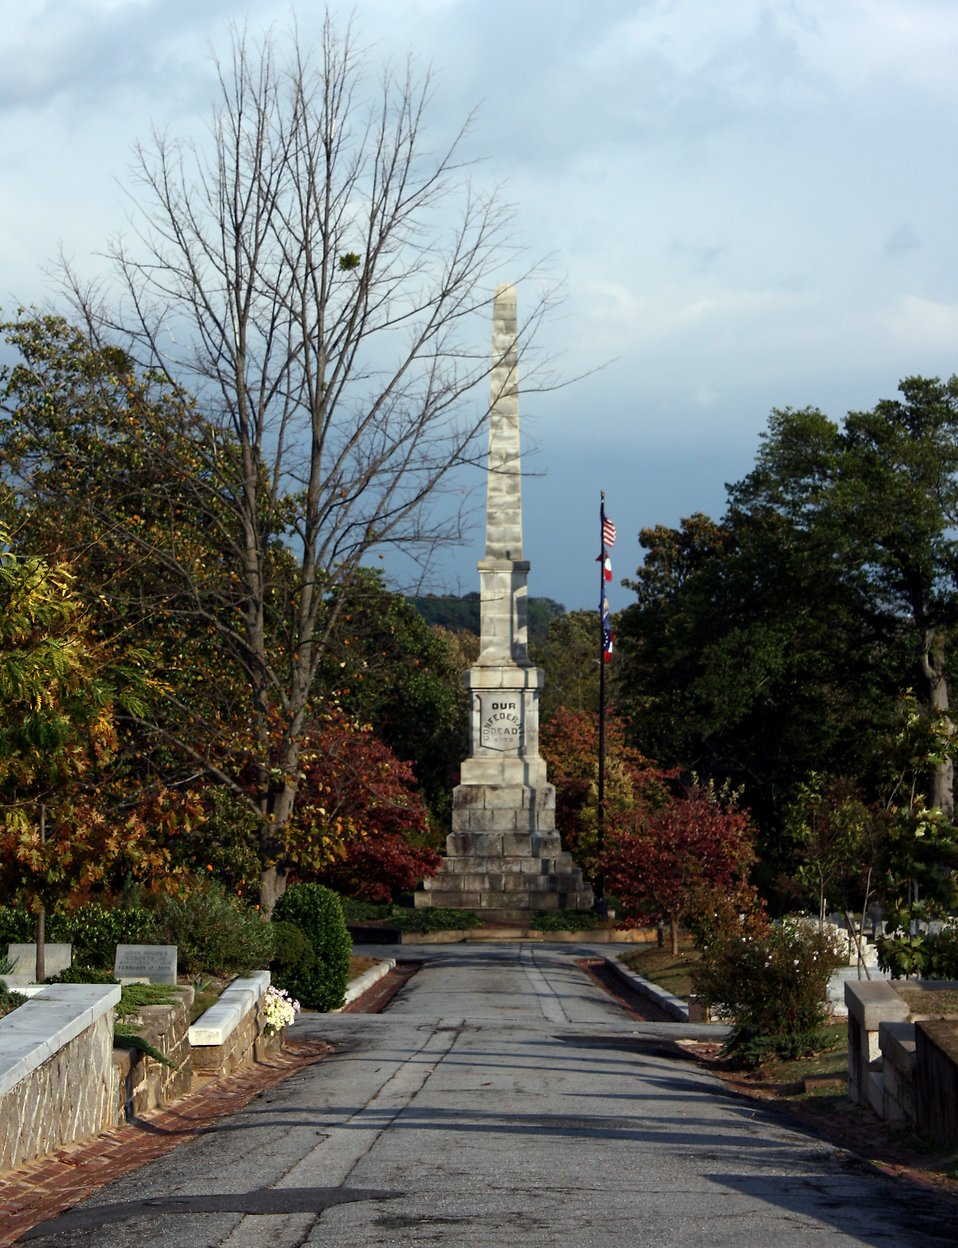 The Confederate Obelisk and flags at historic Oakland Cemetery in Atlanta, Georgia : Free Stock Photo